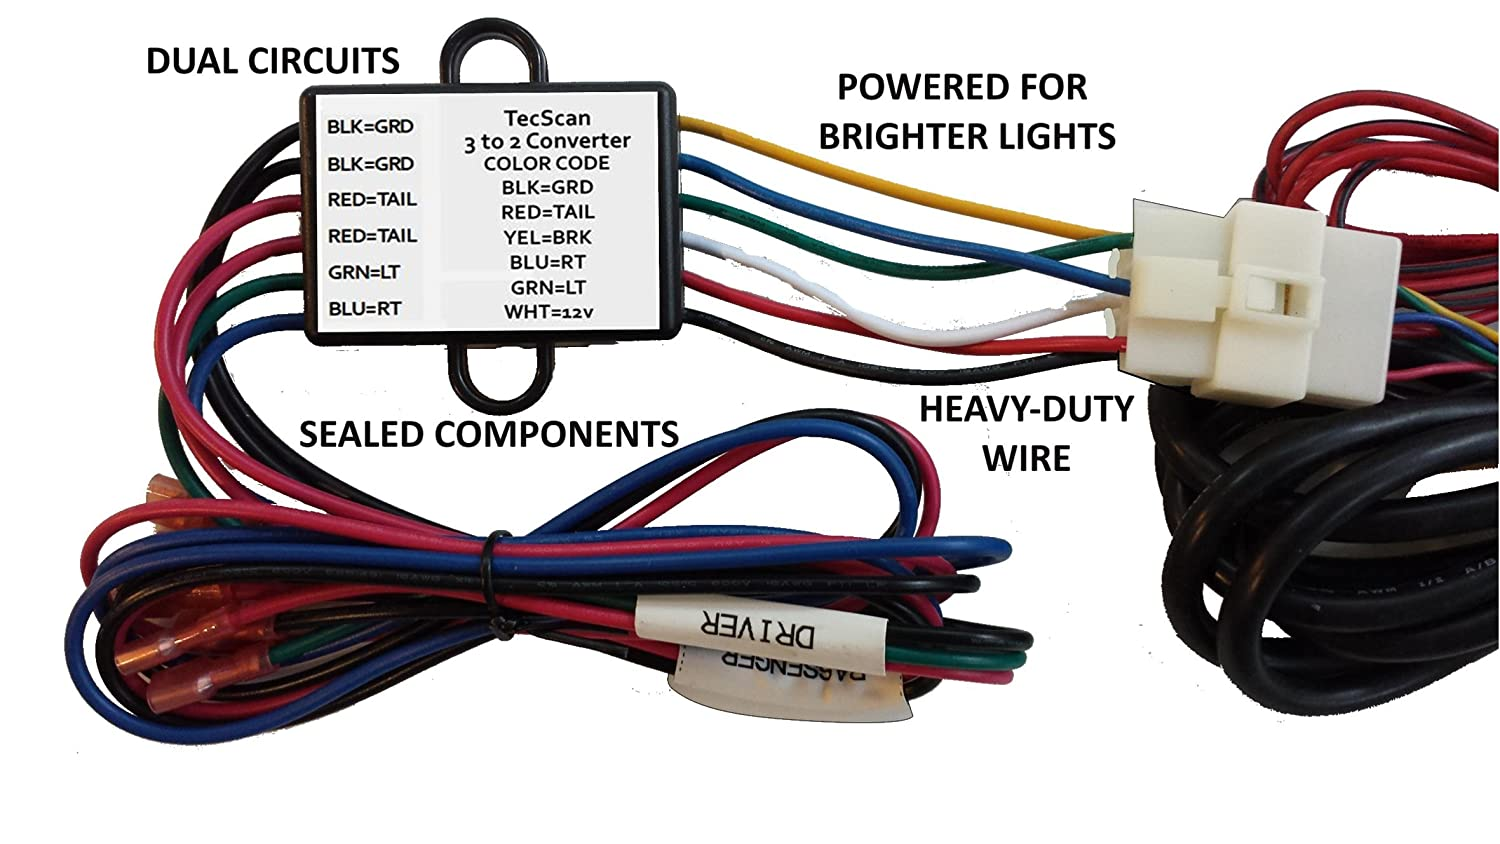 Tecscan Liteseasy Powered 3 To 2 Wire Trailer Tail Light Wiring On How Install A Taillight Converter Garden Outdoor